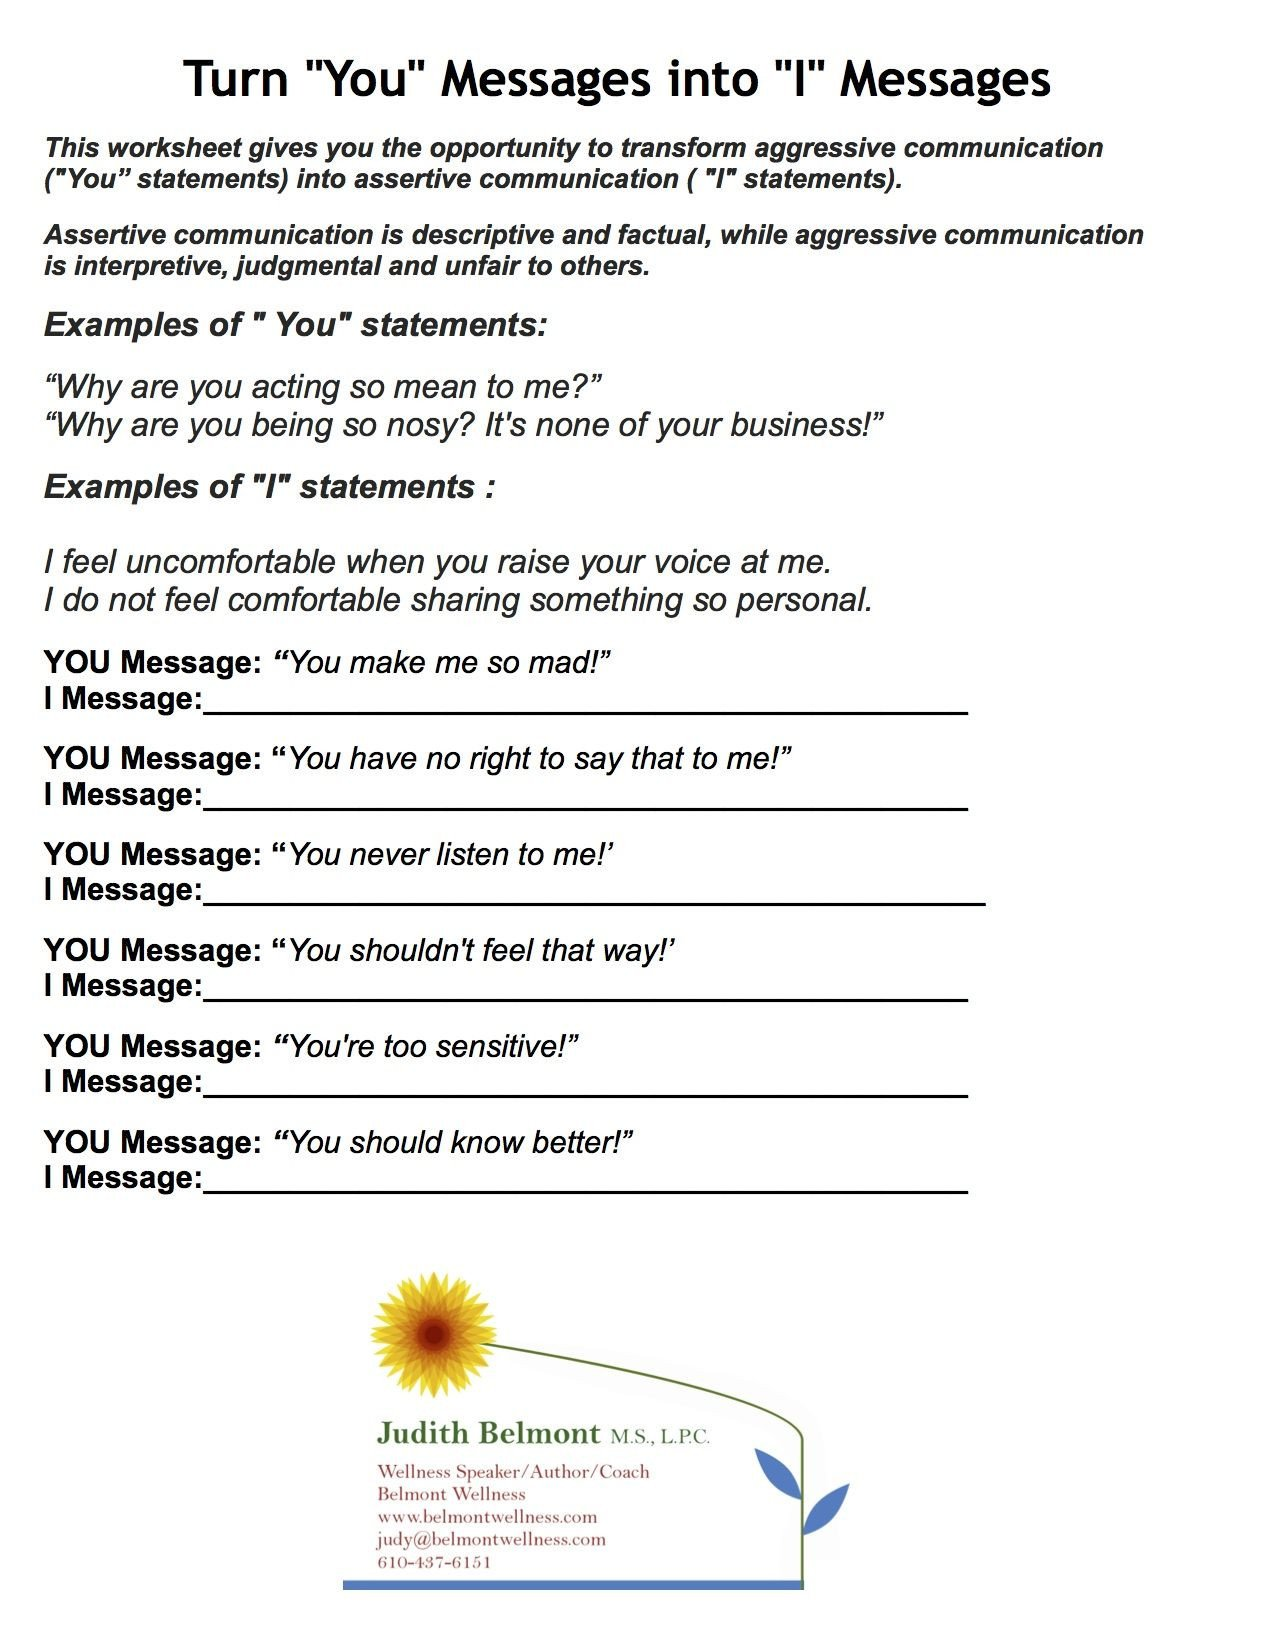 Family therapy Communication Worksheets Judy Belmont